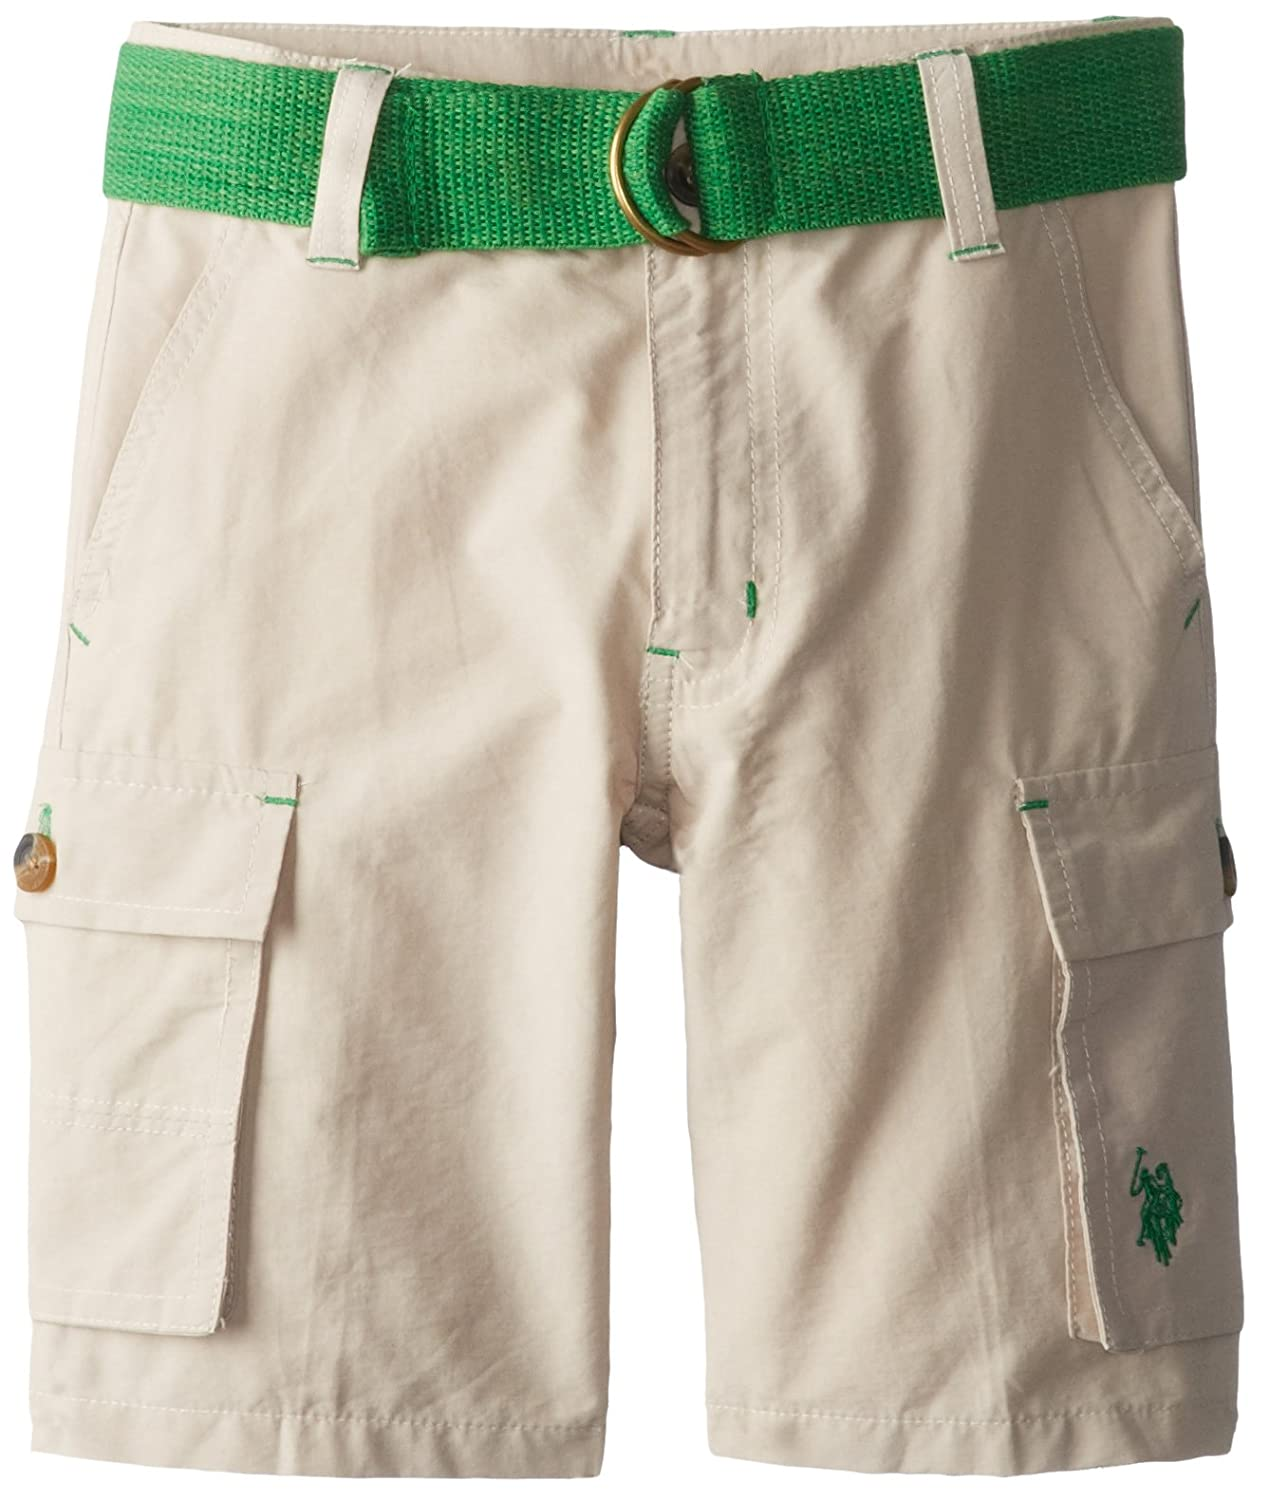 U.S. Polo Assn. Little Boys' Belted Cotton and Nylon Cargo Short